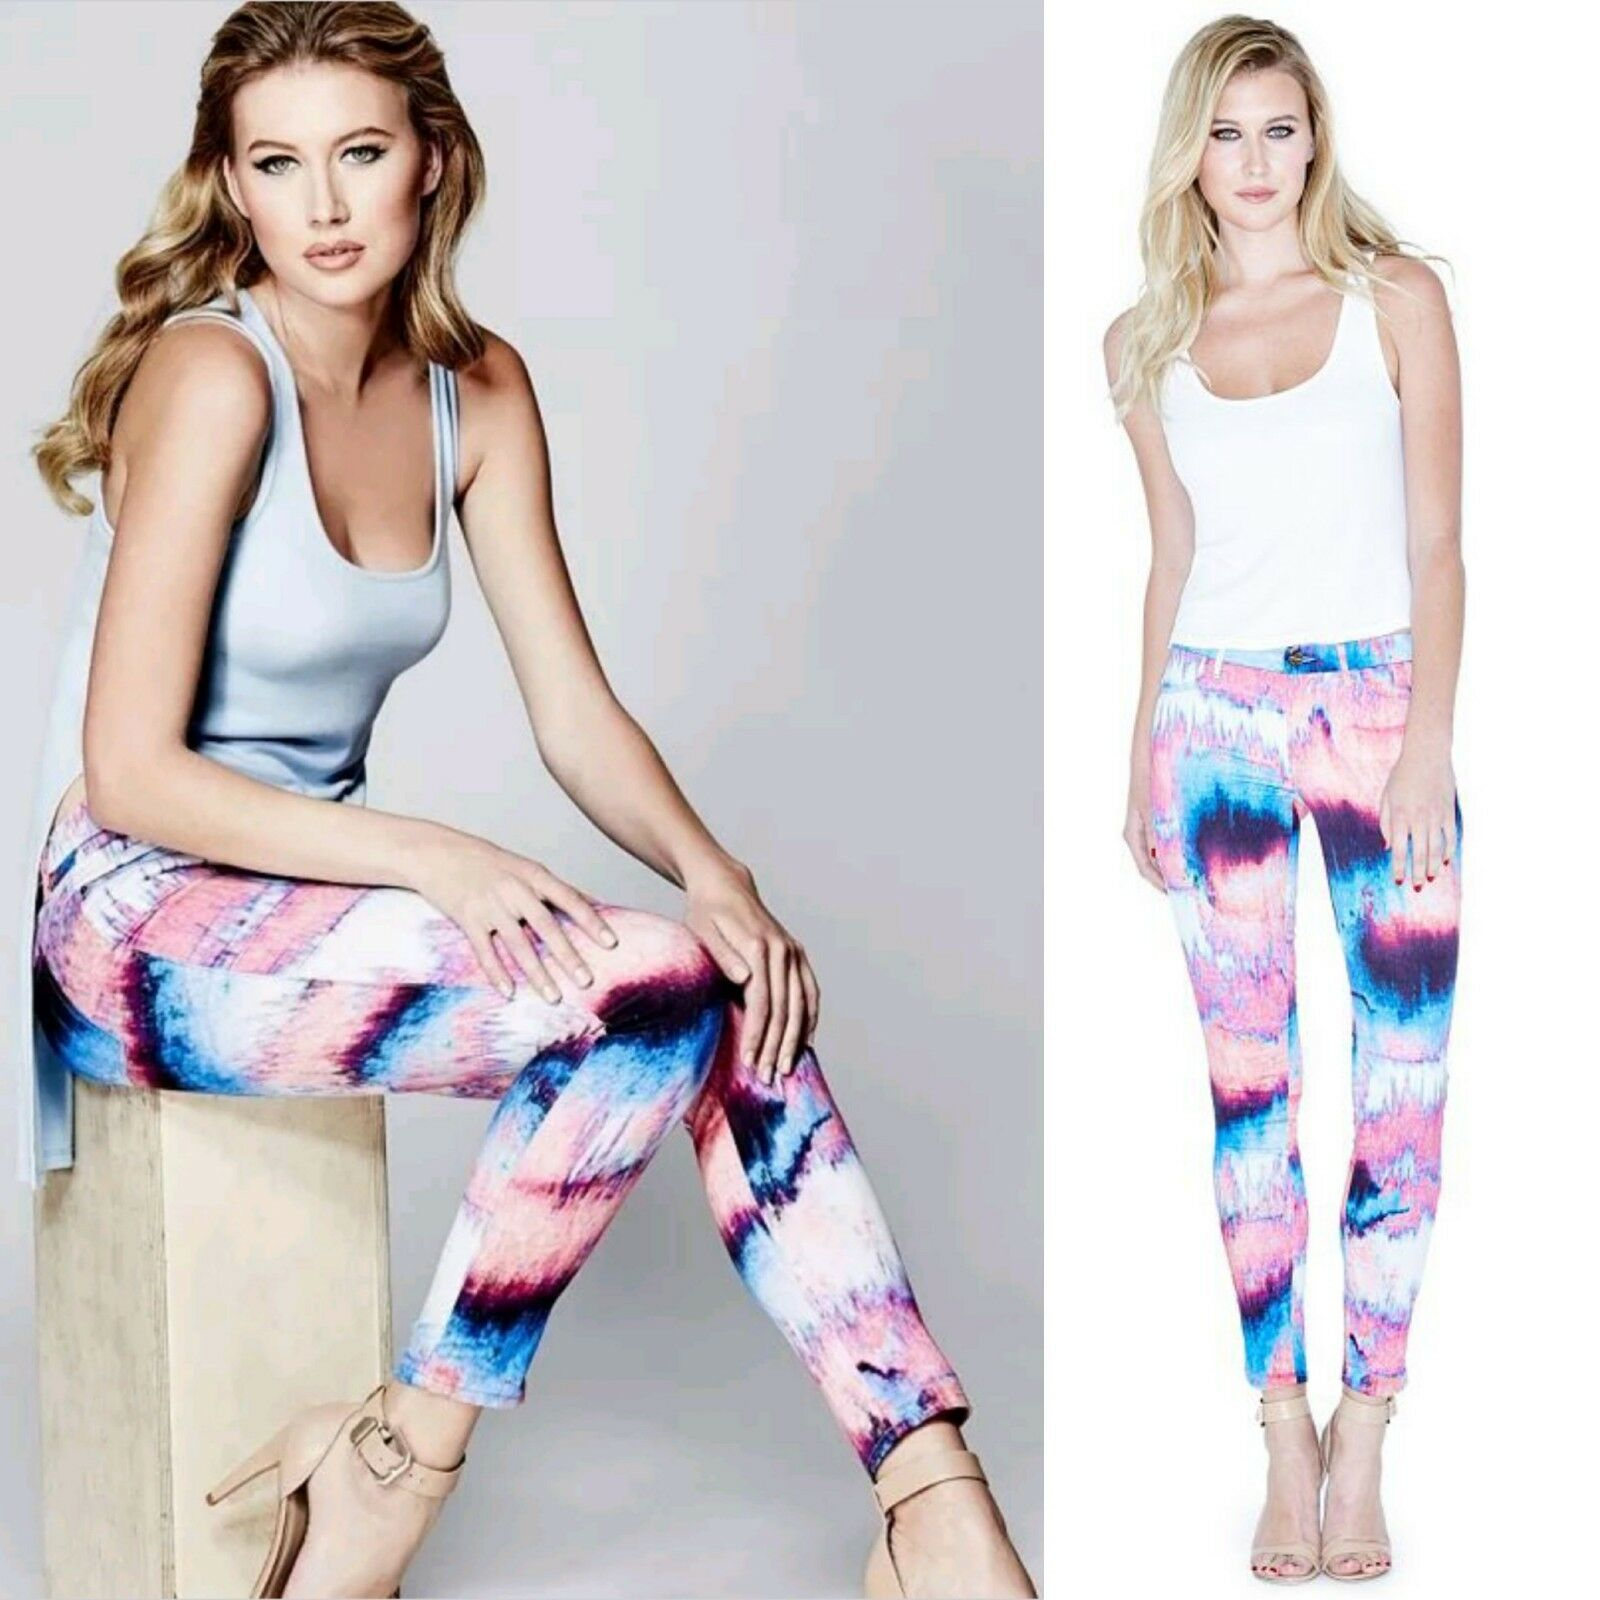 Guess By Marciano The Skinny No.61 Jeans With Reflectives Print